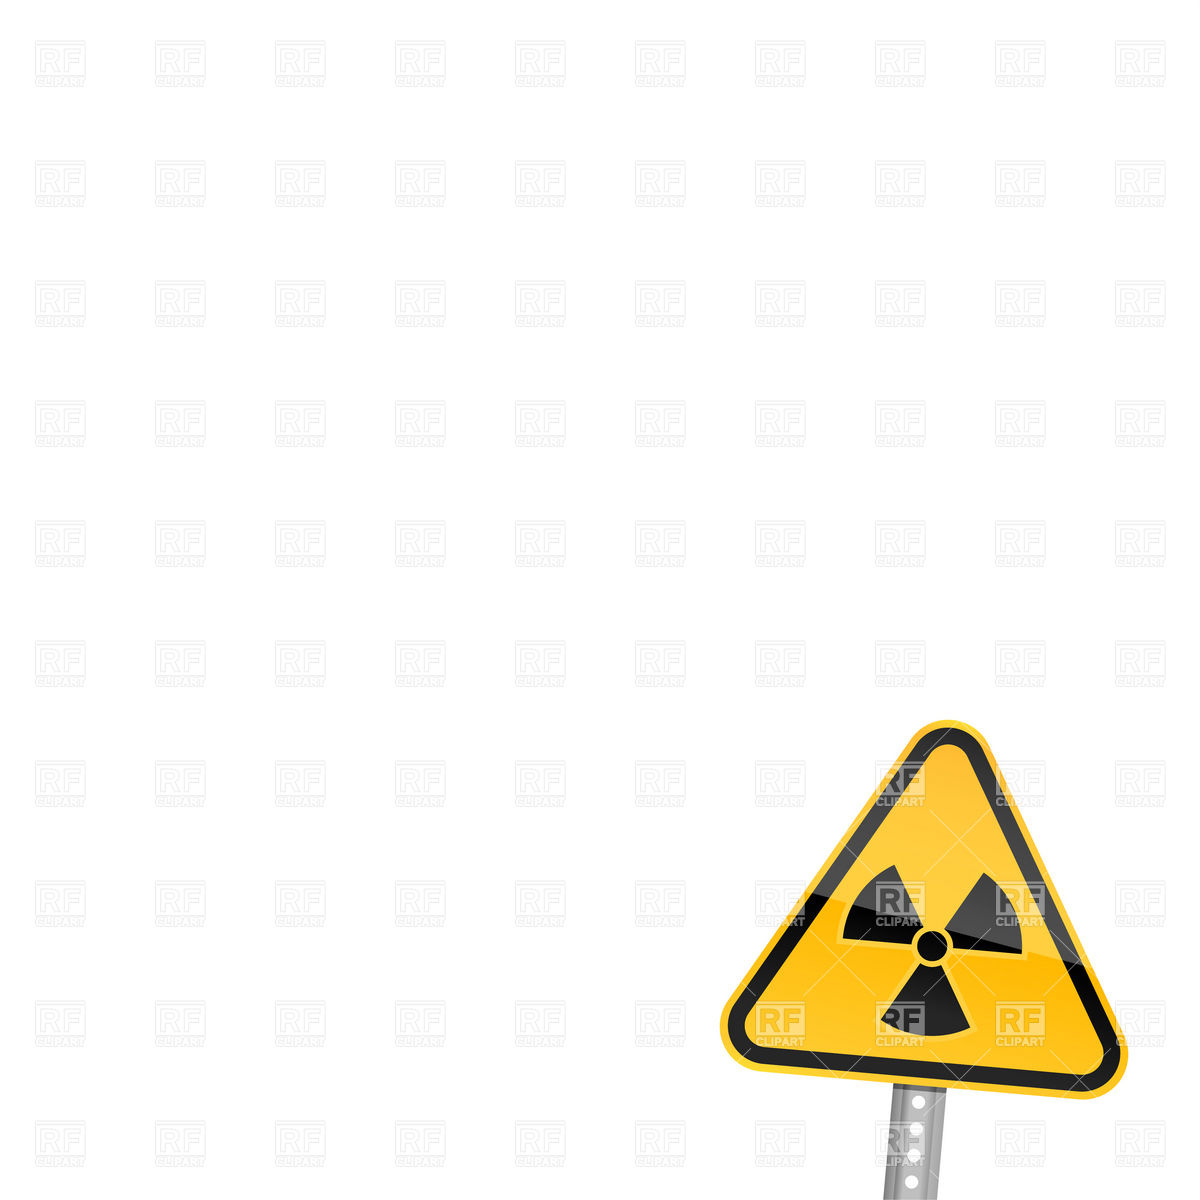 1200x1200 Warning Road Sign With Radiation Symbol Vector Image Vector